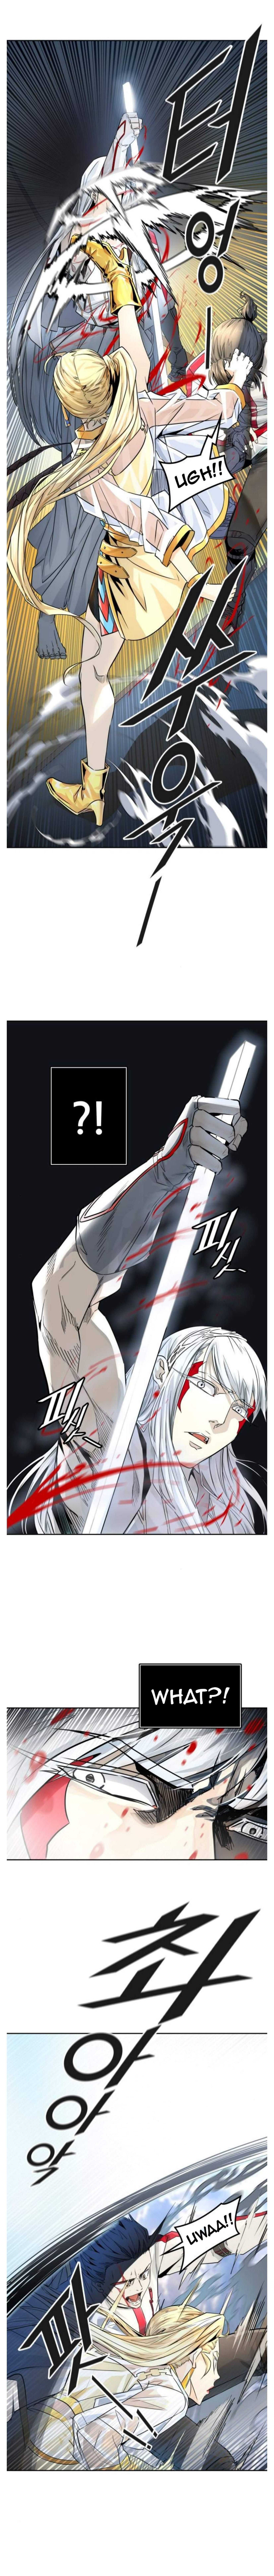 tower of god: Chapter 498 - Page 6